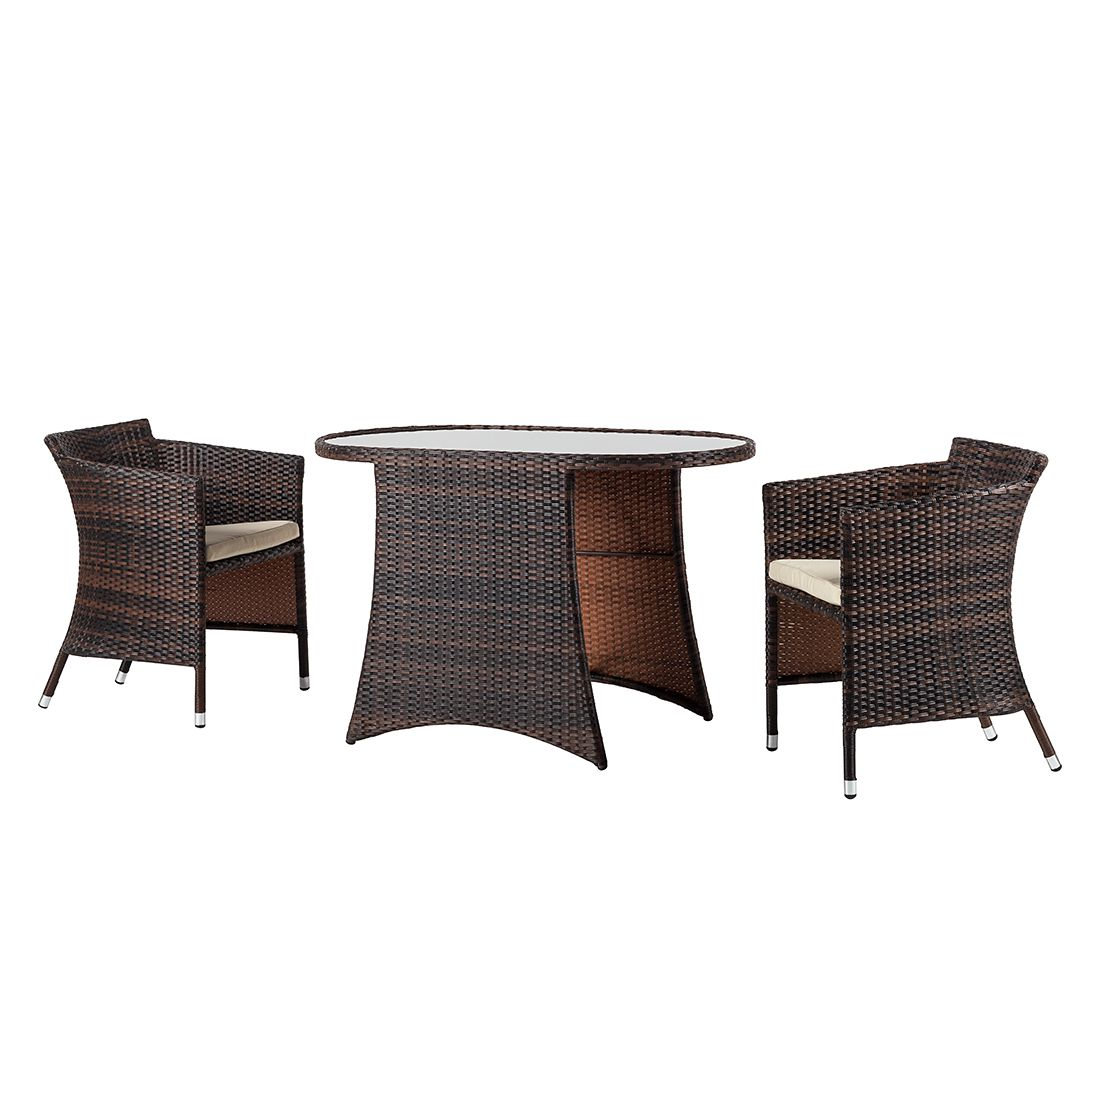 Balkonset 3for2 (3-teilig) - Polyrattan Braun, Kings Garden